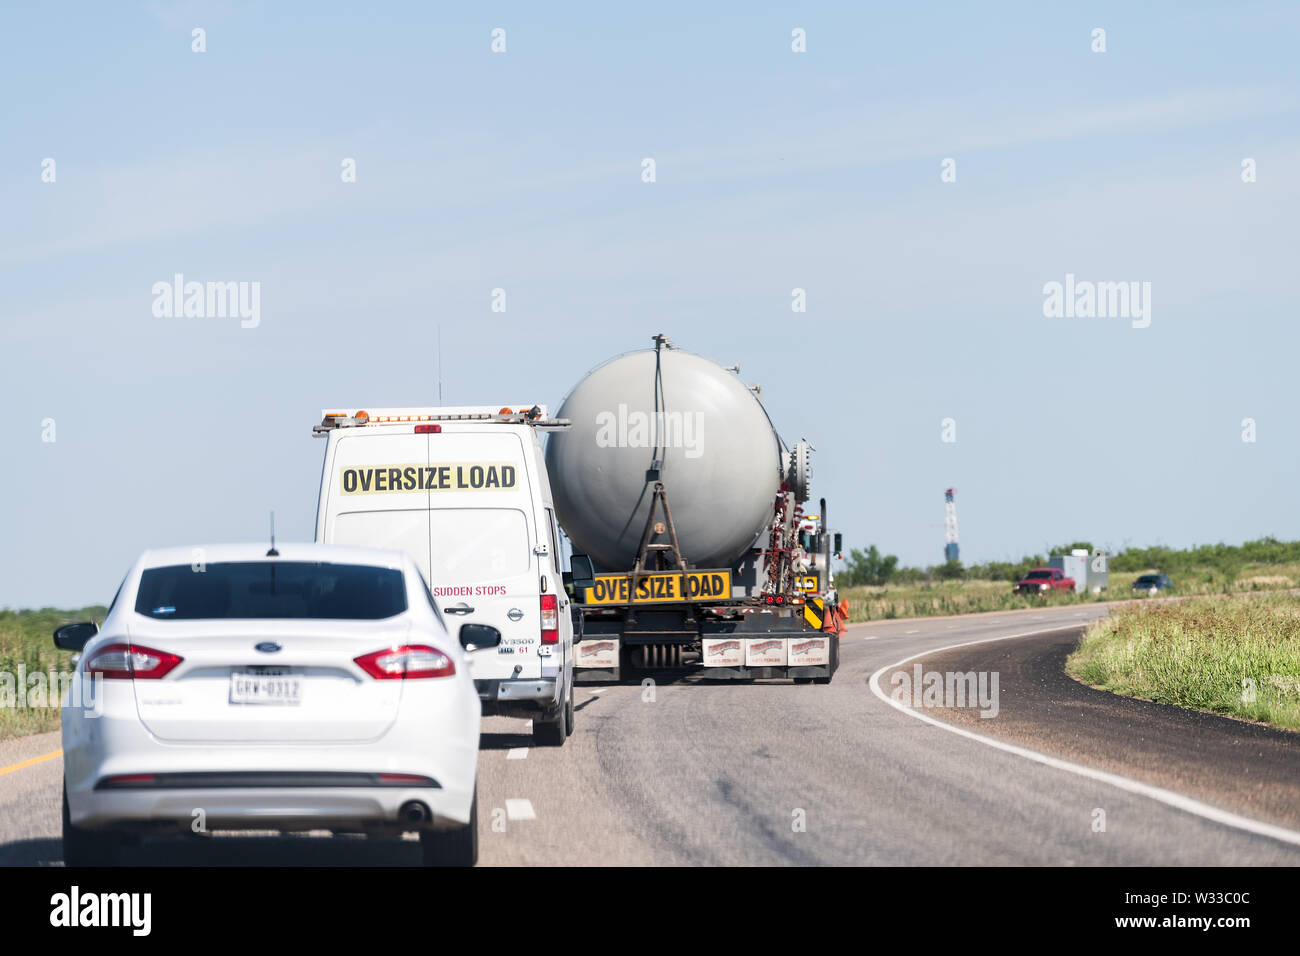 Post, USA - June 8, 2019: Highway road 84 in Texas countryside with oversize load truck blocking traffic Stock Photo